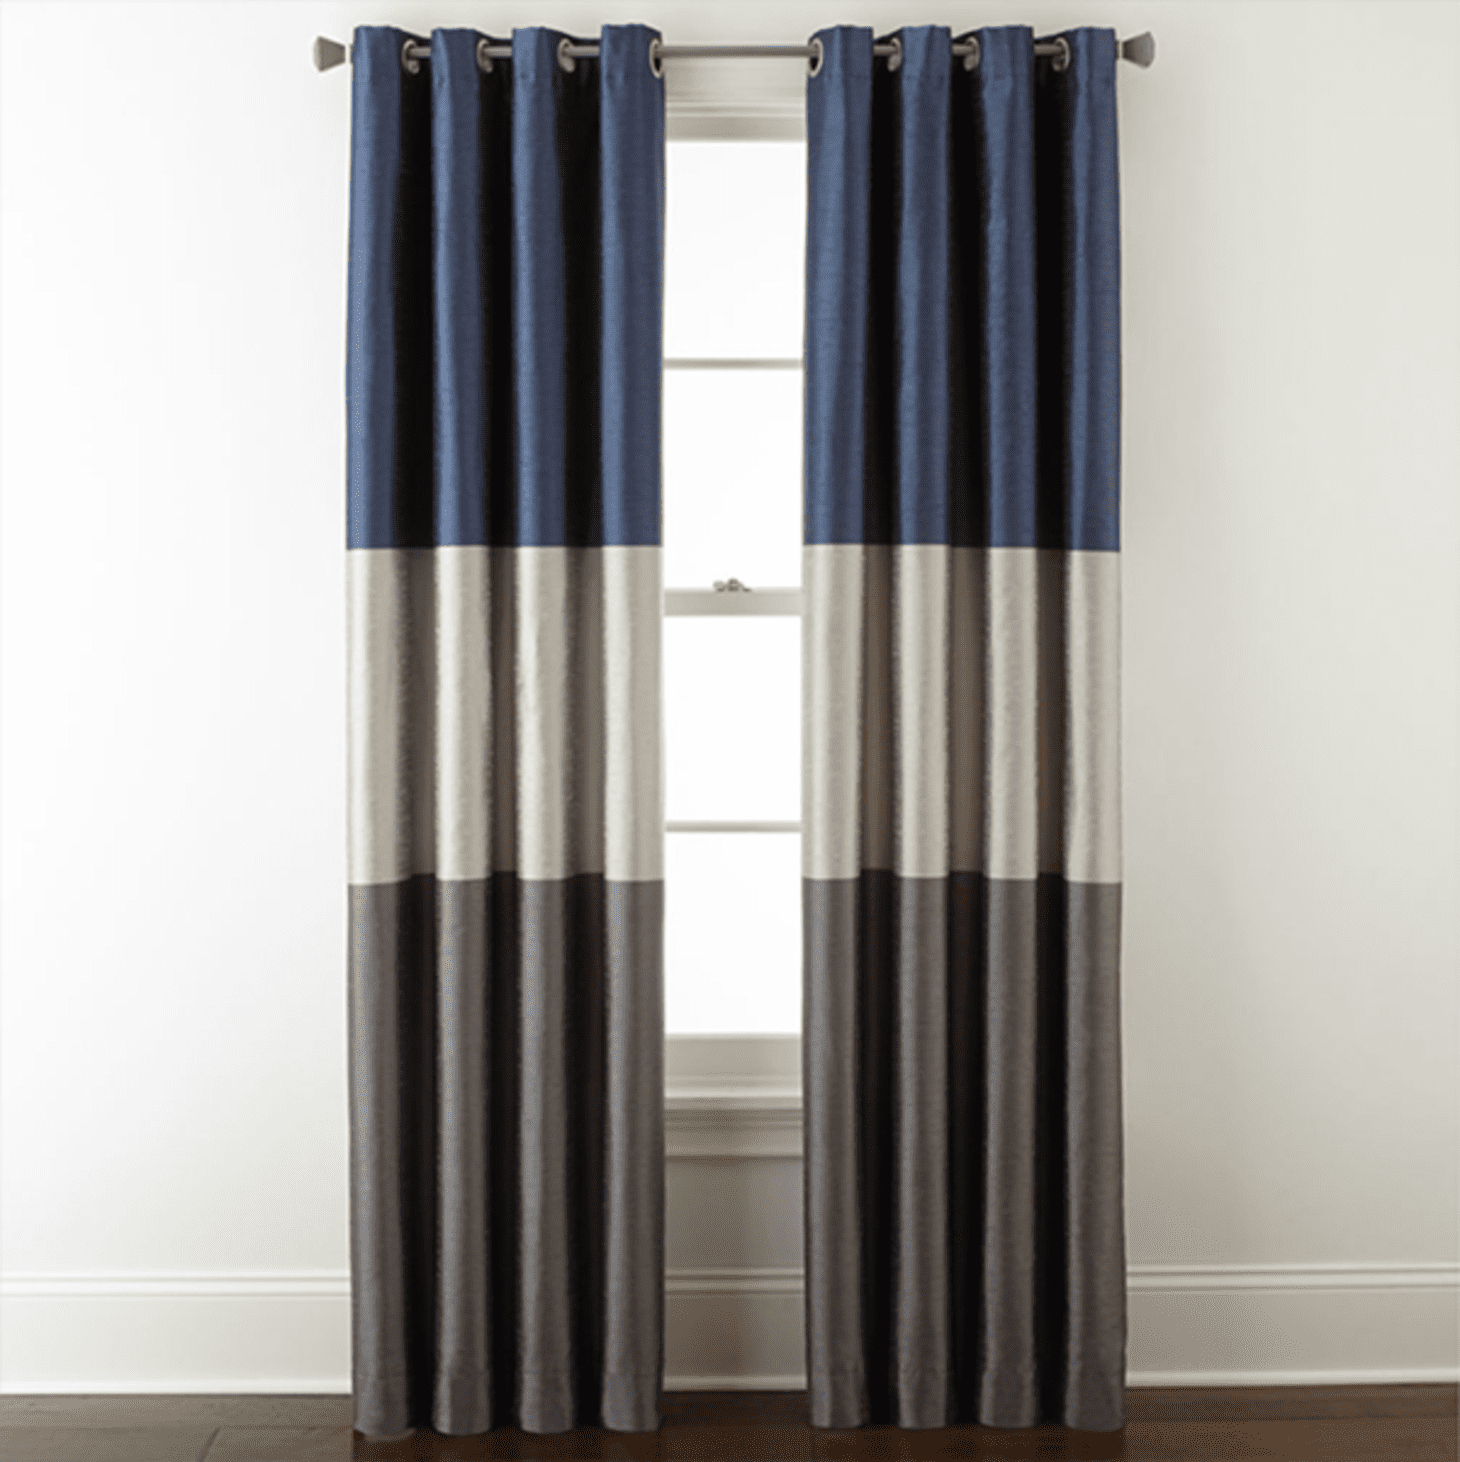 Best Insulated Blackout Curtains | Apartment Therapy Regarding Thermal Insulated Blackout Grommet Top Curtain Panel Pairs (View 23 of 30)